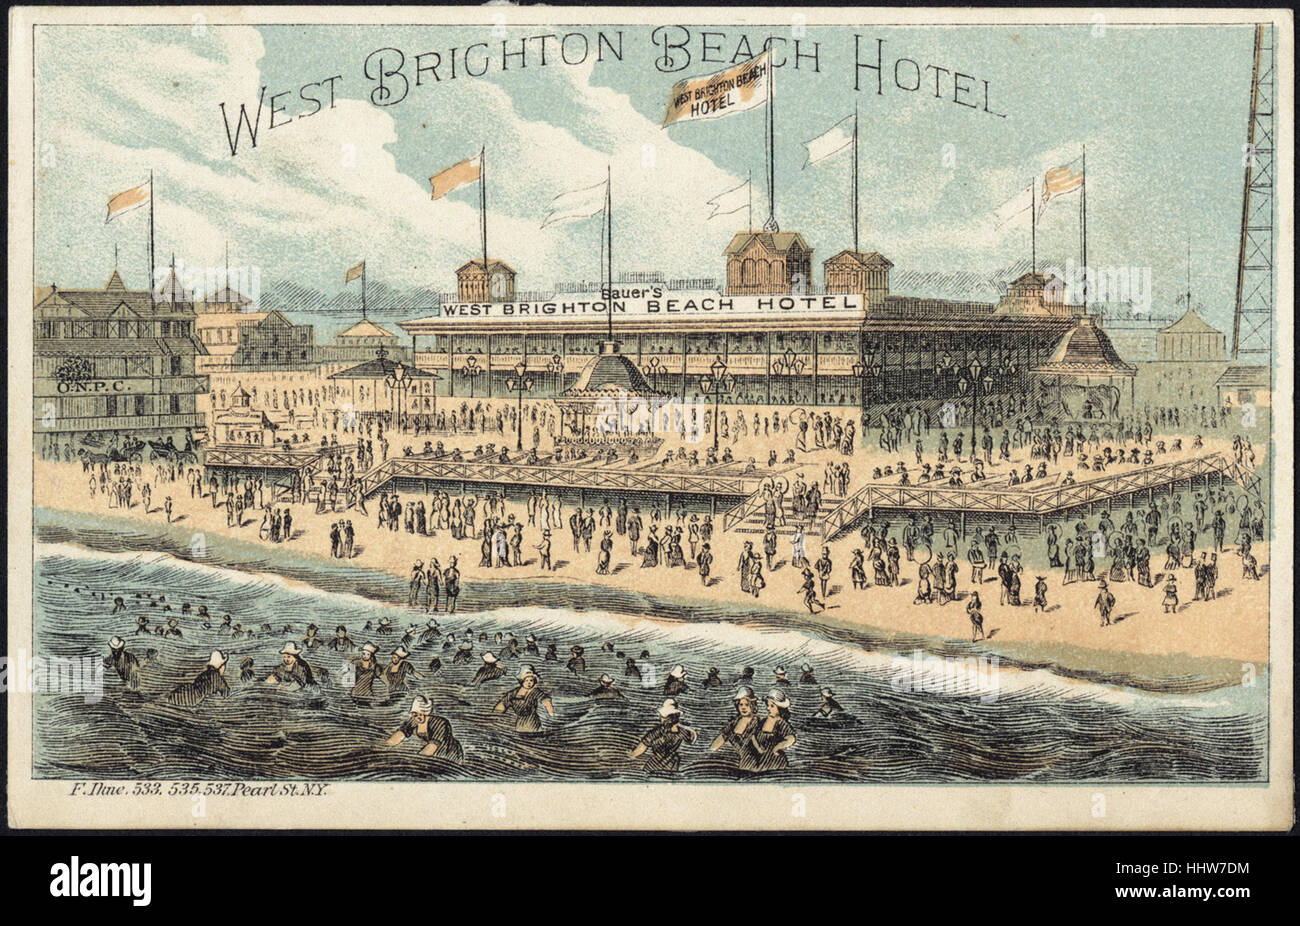 West Brighton Beach Hotel [front]  - Leisure, Reading, and Travel Trade Cards Stock Photo